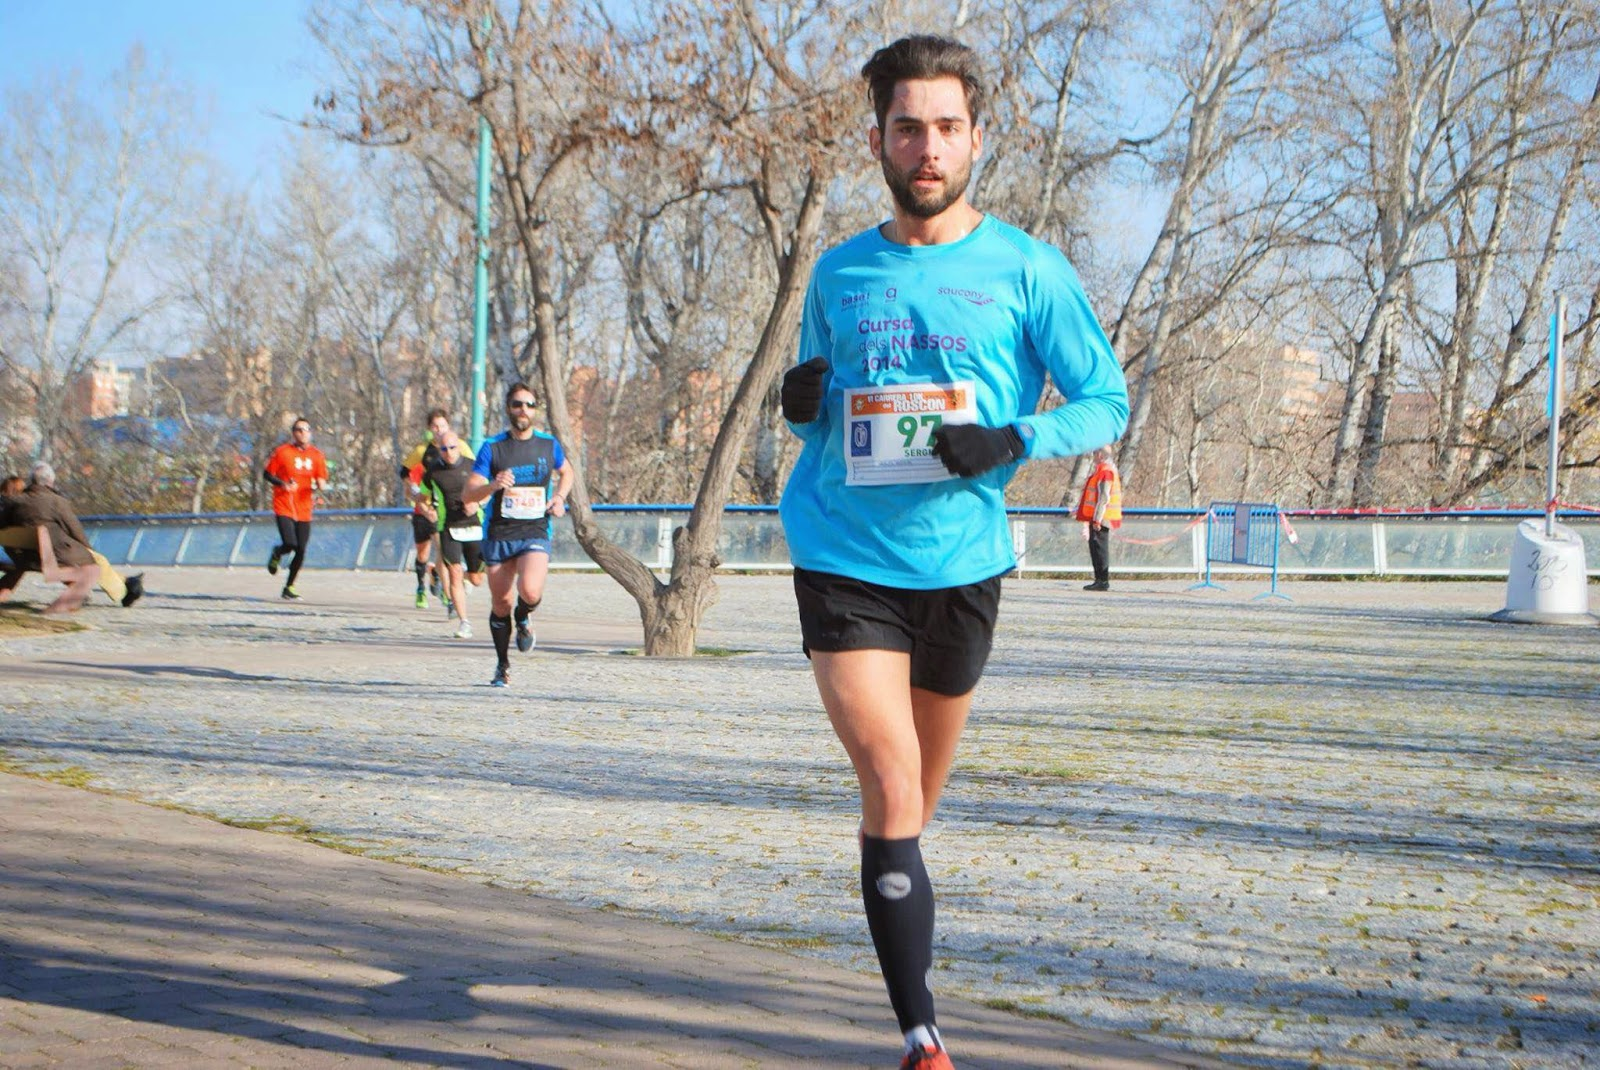 carrera 10k roscon zaragoza videos